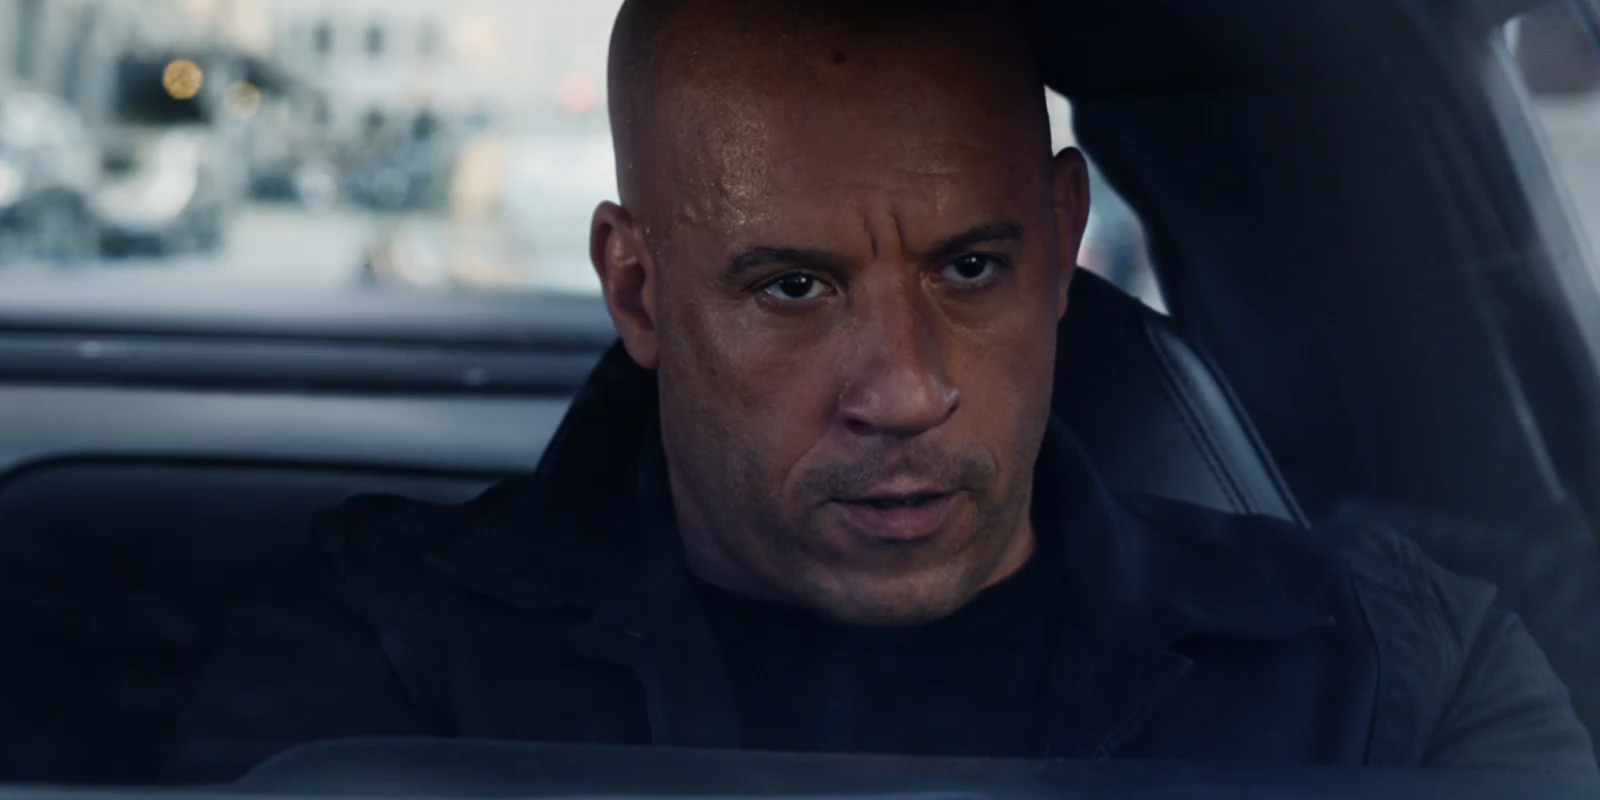 Vin Diesel as Dominic Toretto in Fate of the Furious